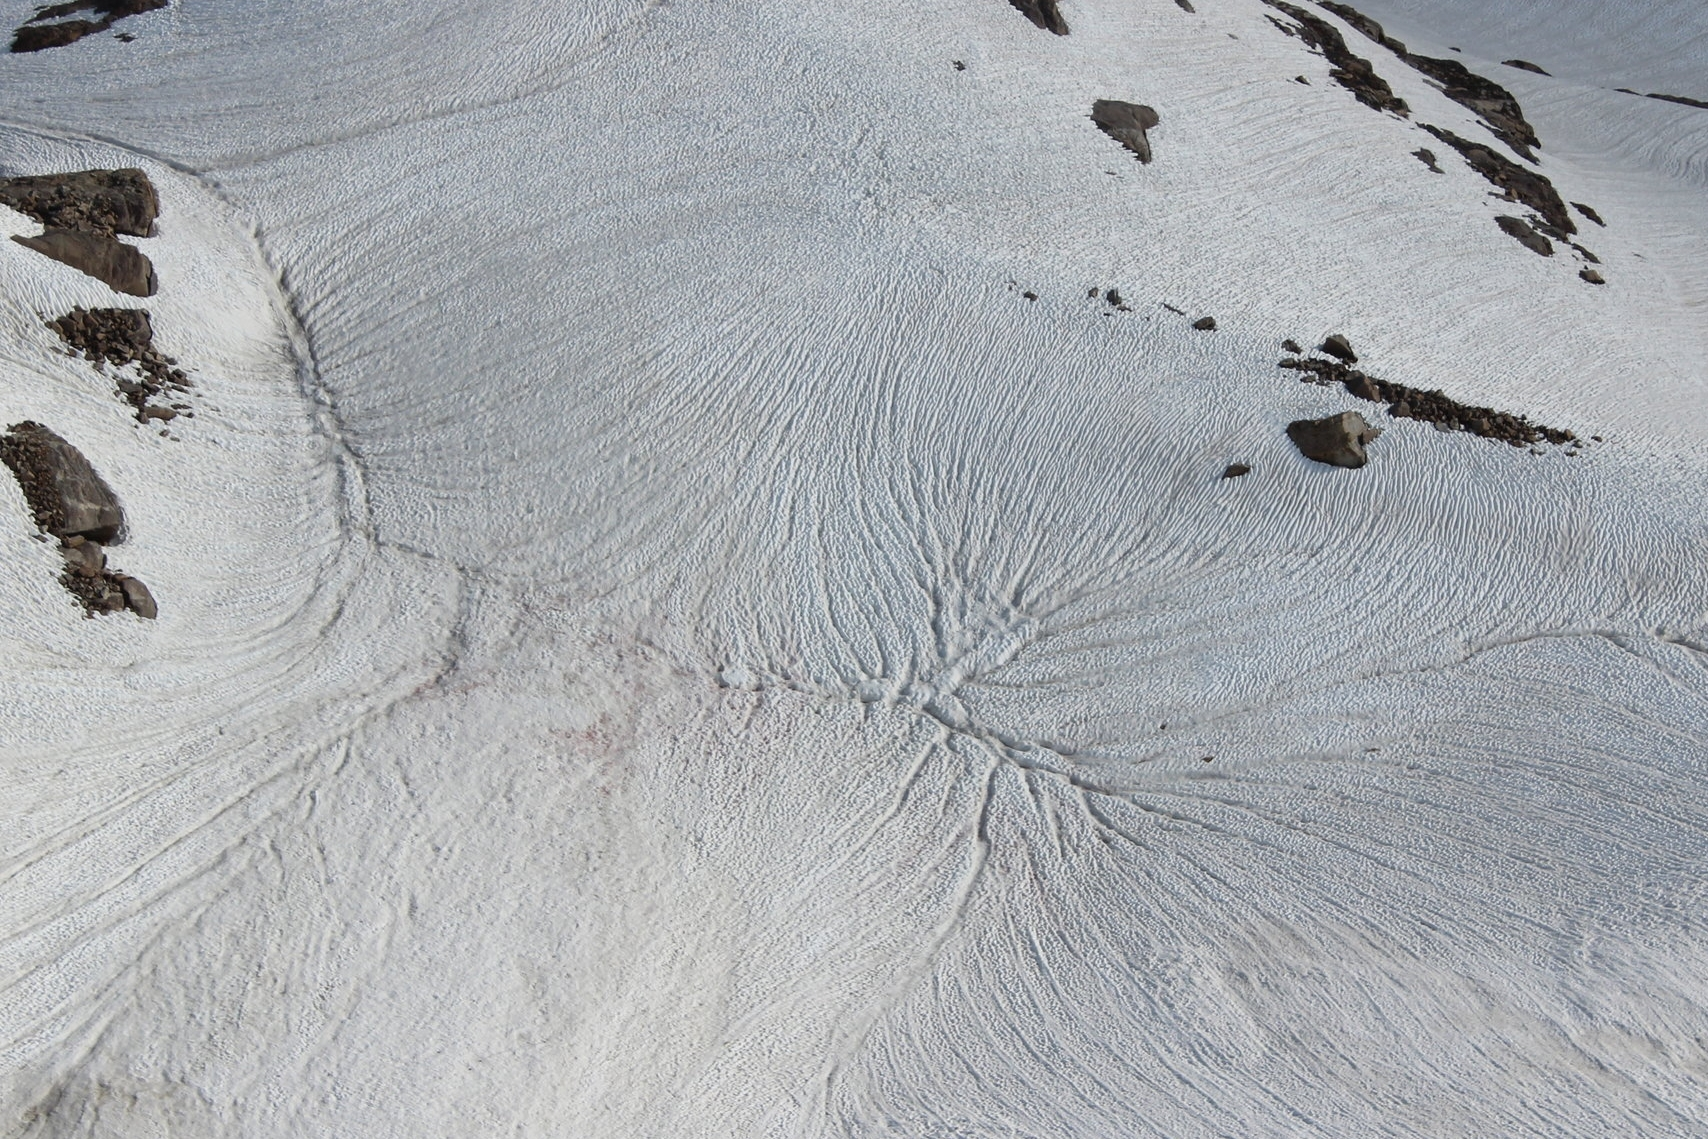 Fascinating snow melt patterns in the valley below Ruby Dome